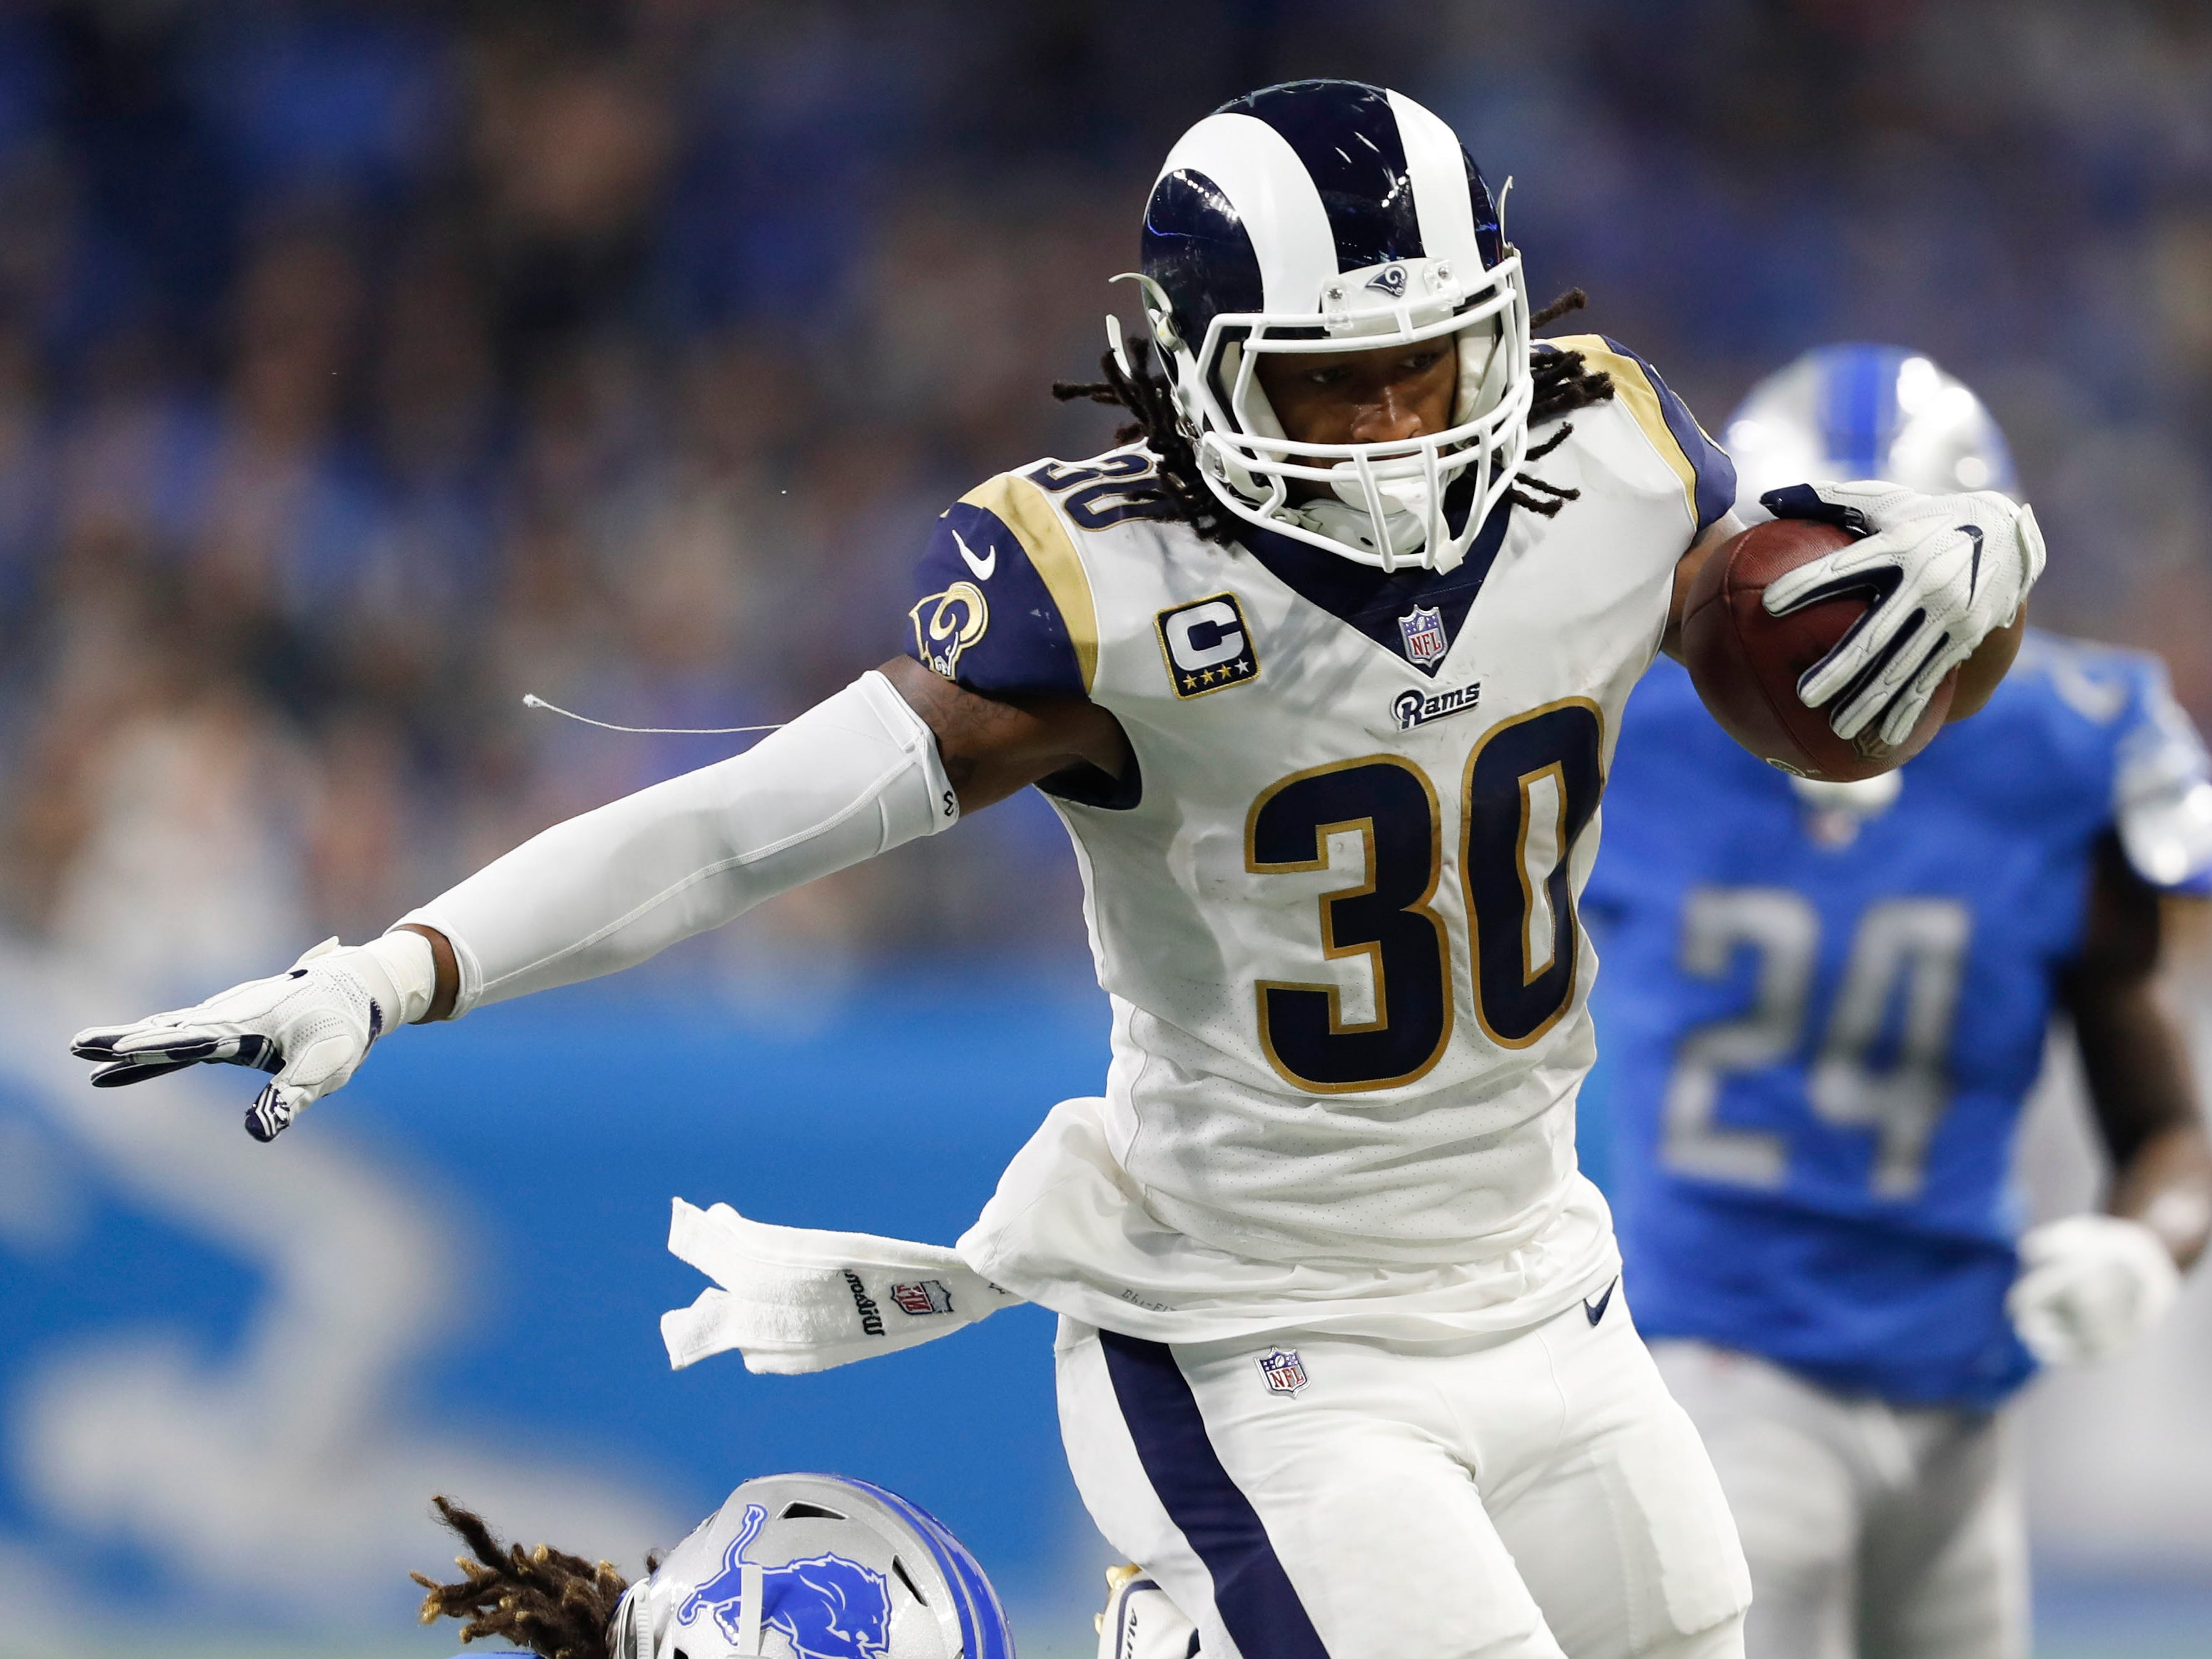 1. Rams (2): Only team with 11 wins. Only team to clinch playoff berth so far. Only team with two bona fide MVP candidates (Todd Gurley and Aaron Donald).